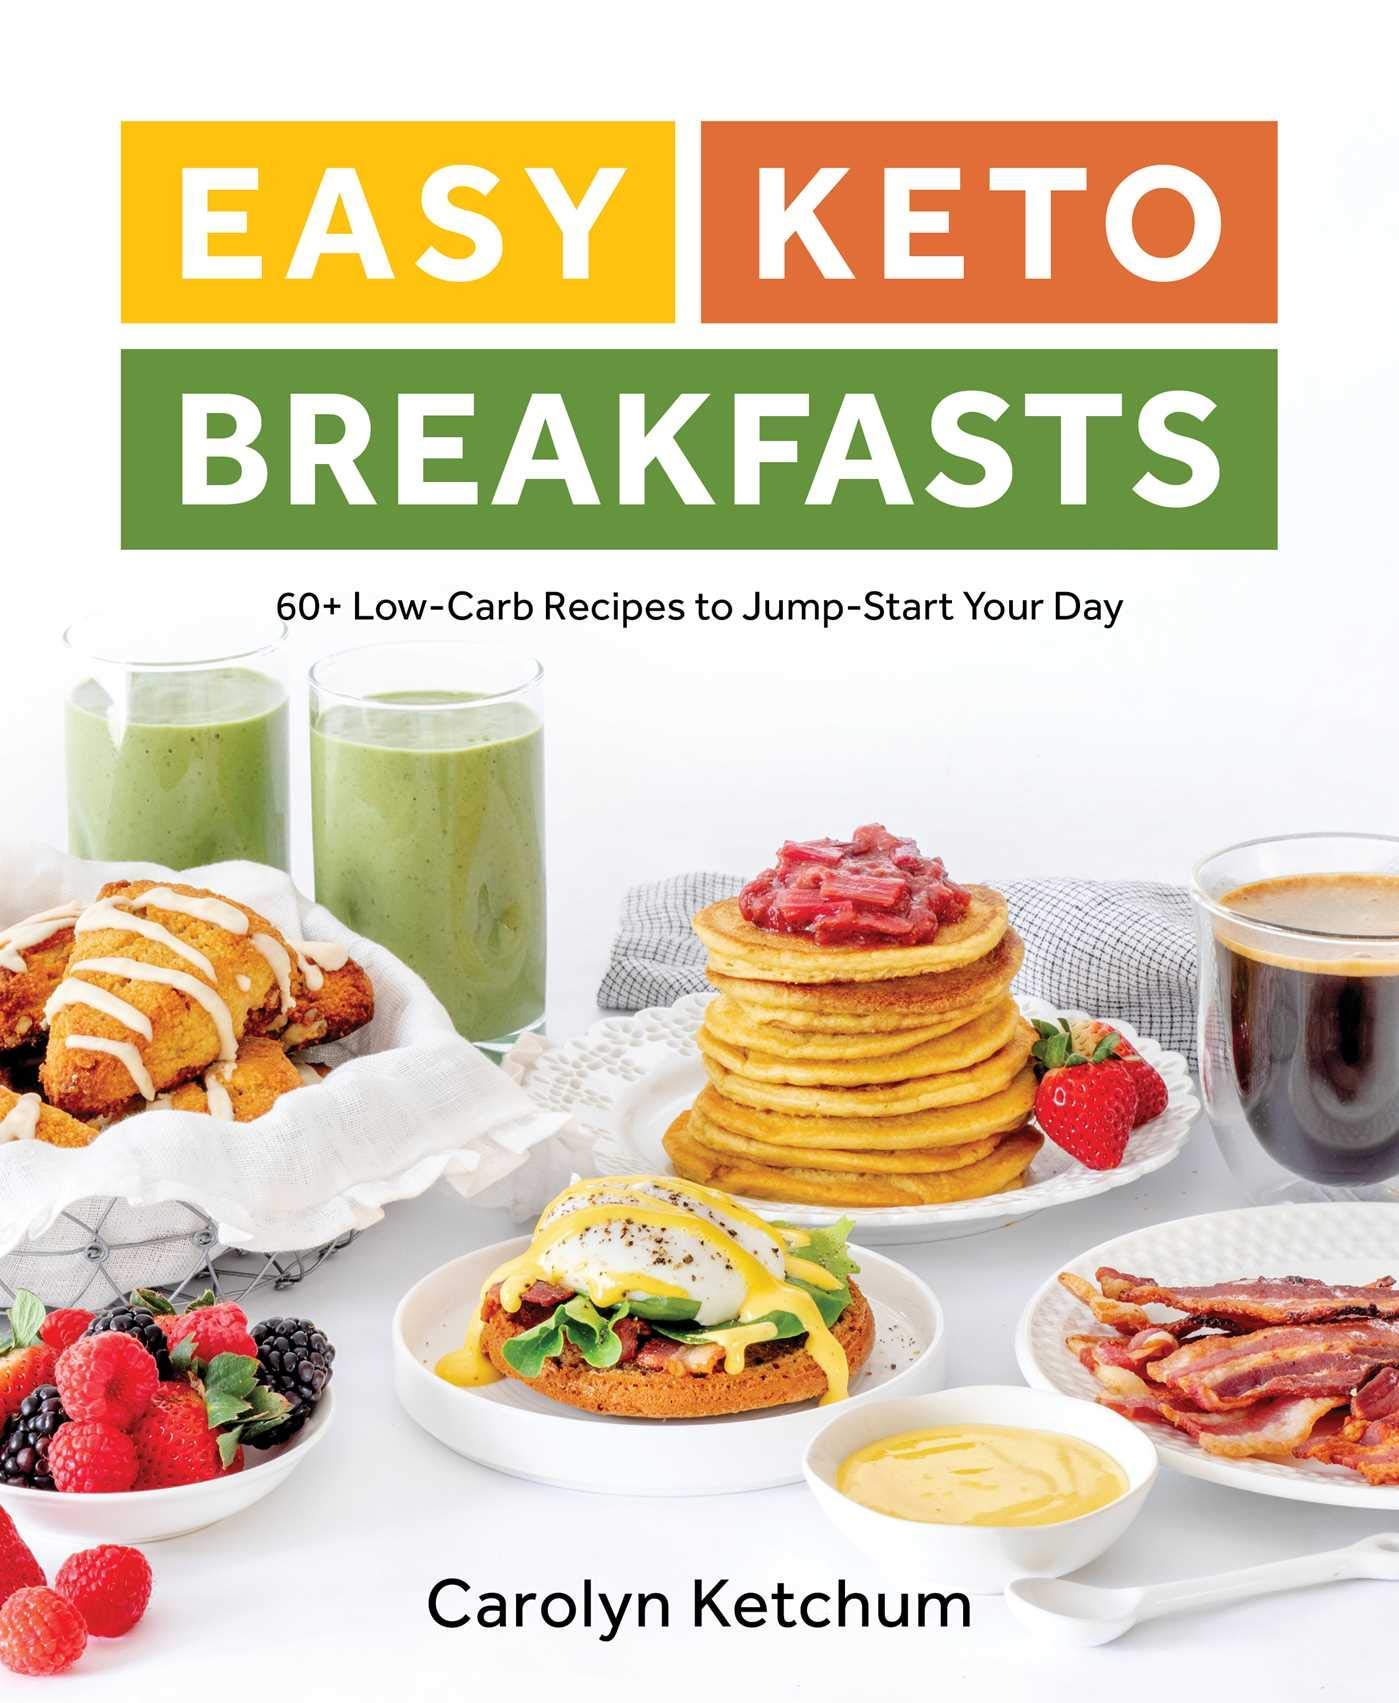 Easy Keto Breakfasts 60 Low Carb Recipes To Jump Start Your Day Ketchum Carolyn 9781628603668 Amazon Com Books